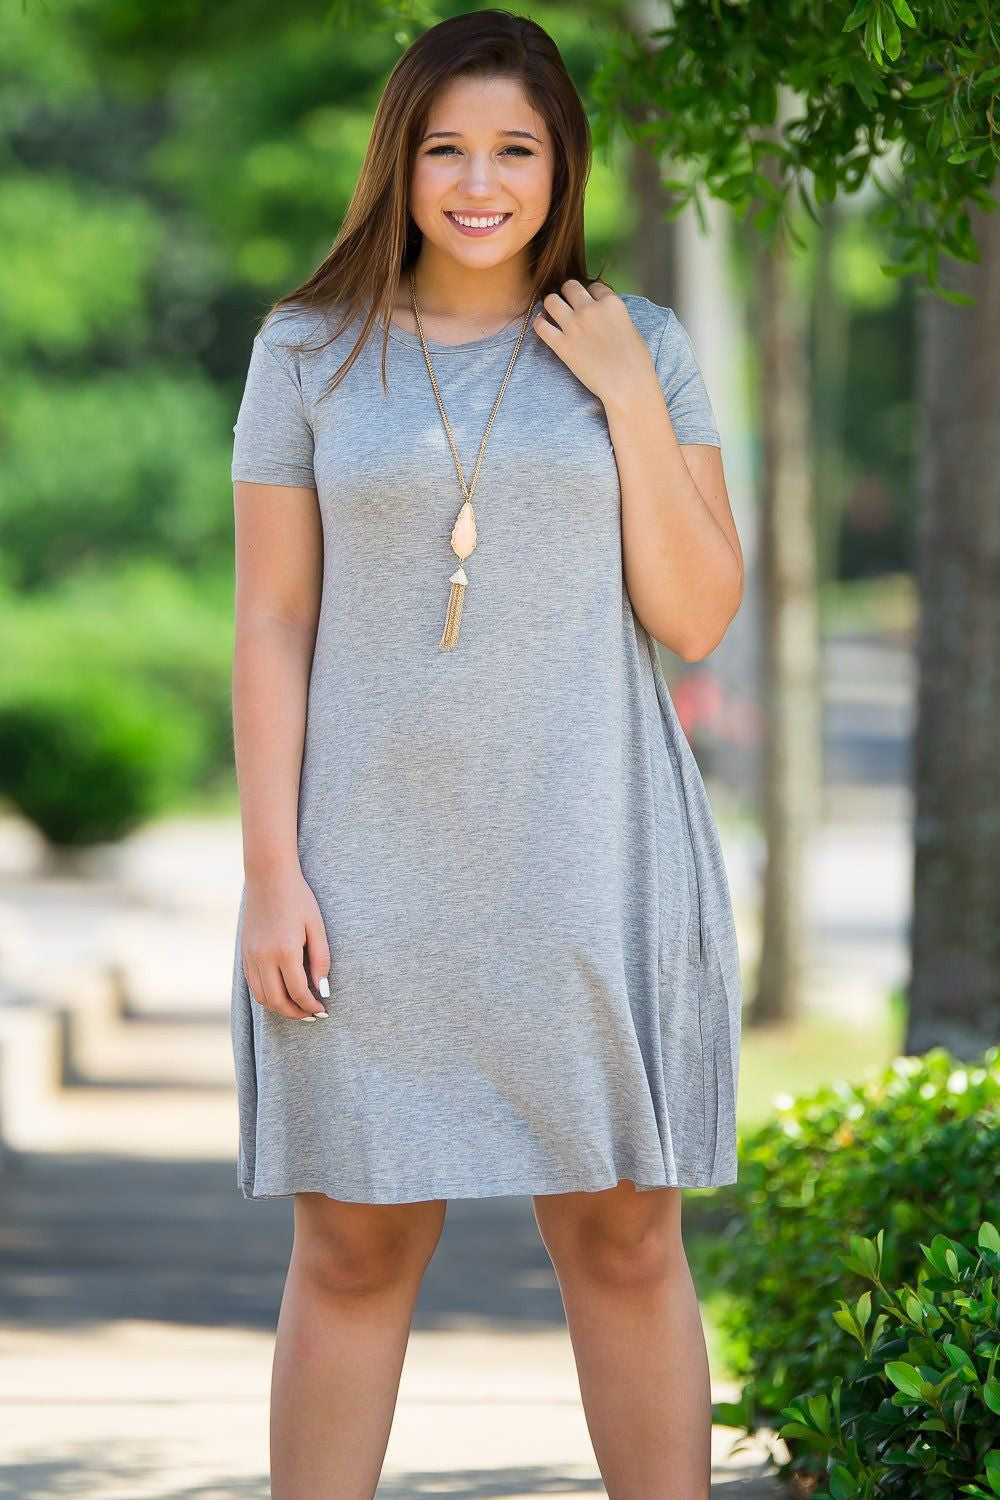 Piko Short Sleeve Swing Dress - Heather Grey - Piko Clothing - 2